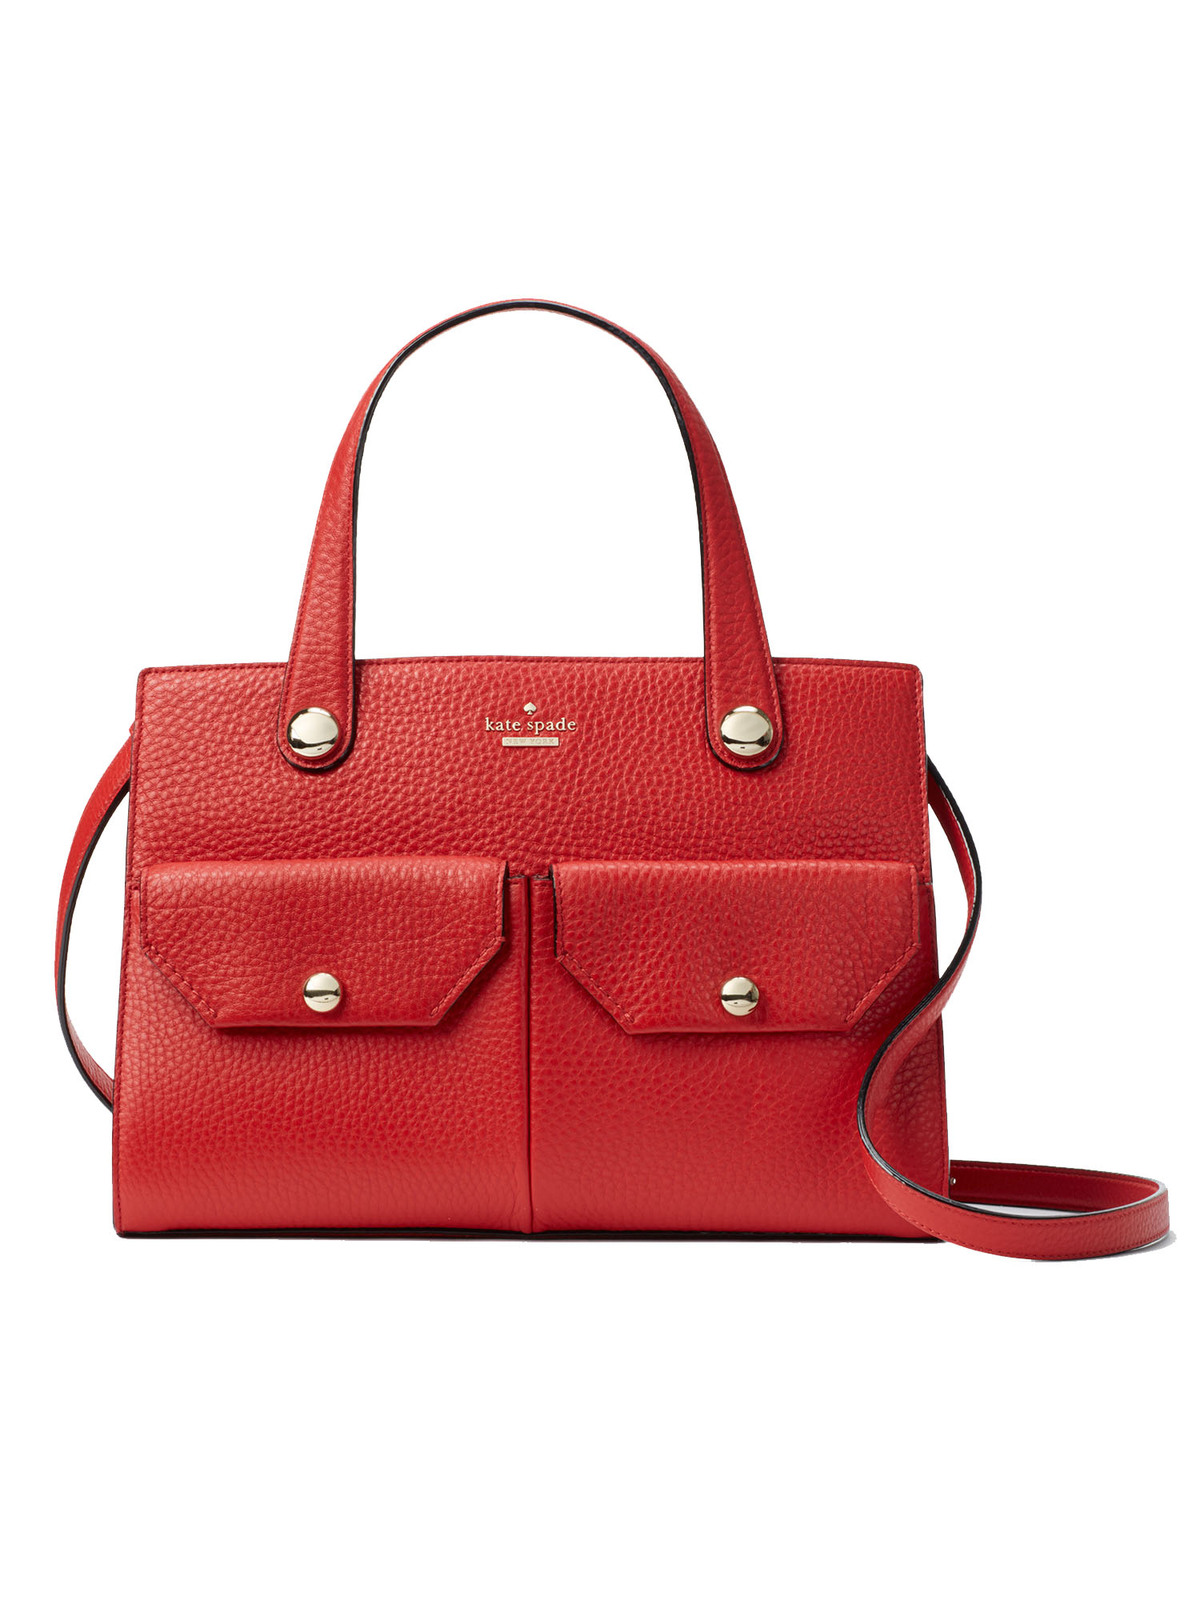 Kate Spade Stewart Street Big Joy Leather Satchel